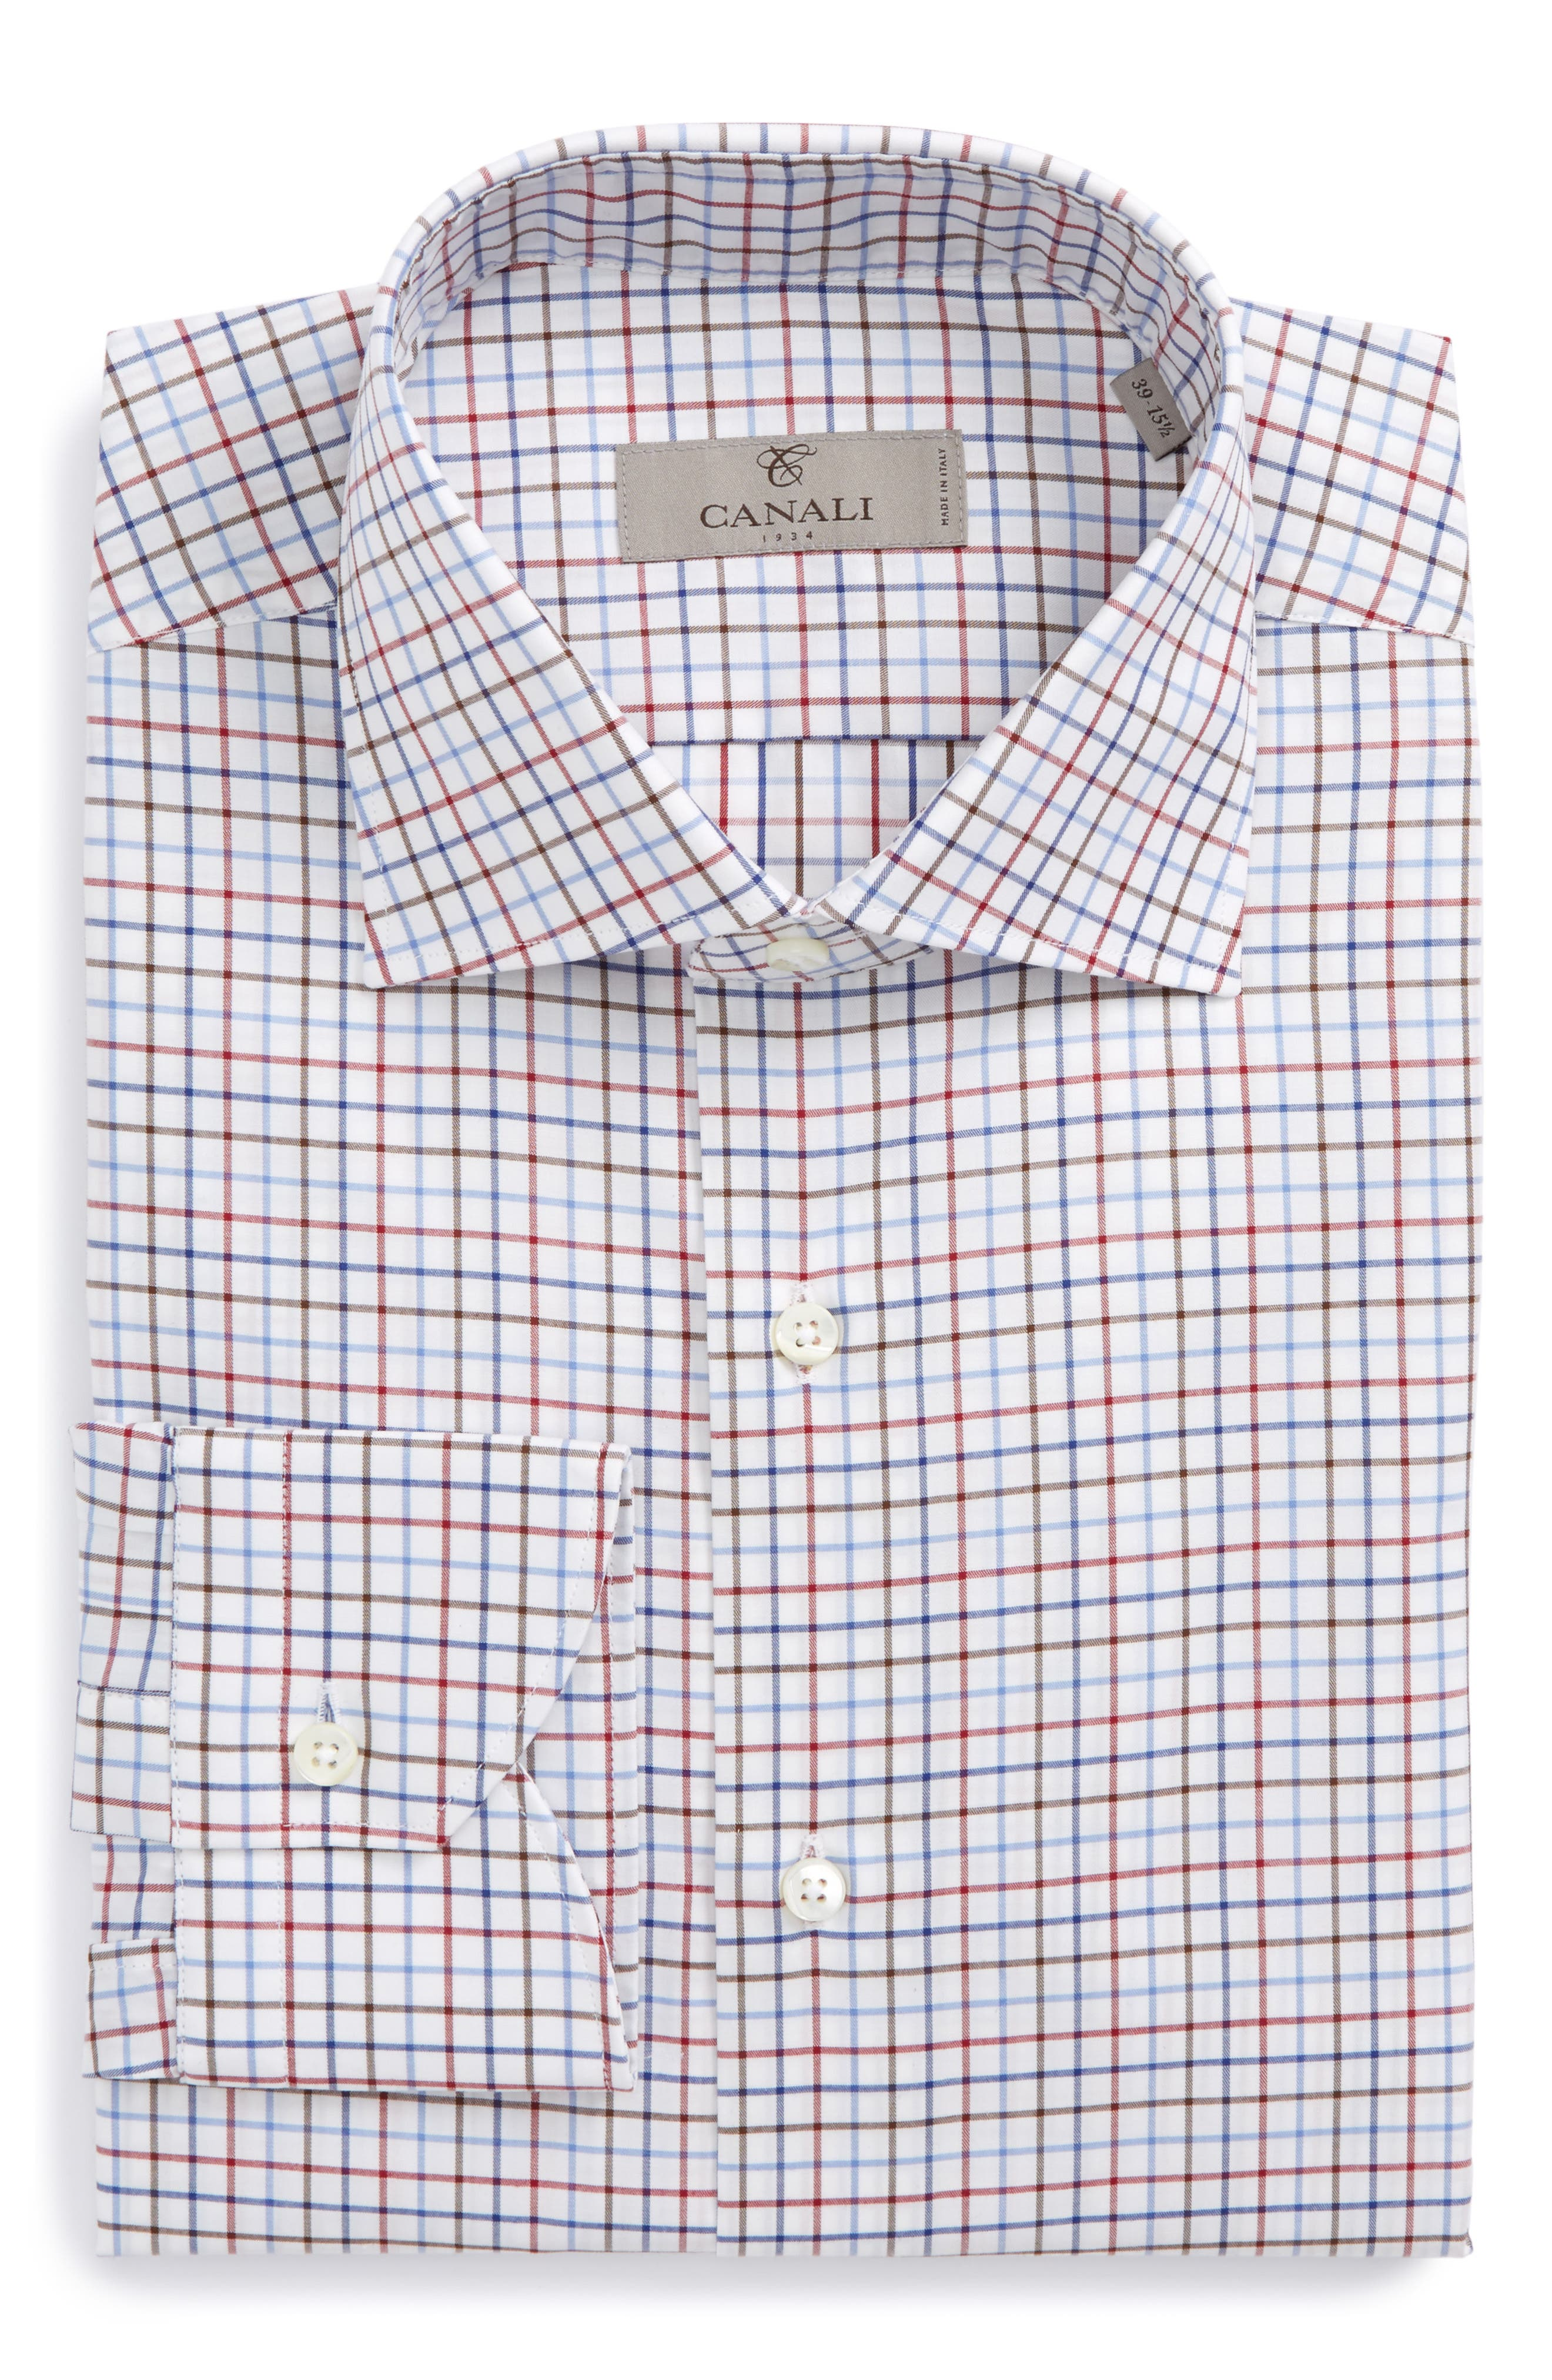 Regular Fit Check Dress Shirt,                             Main thumbnail 1, color,                             Red